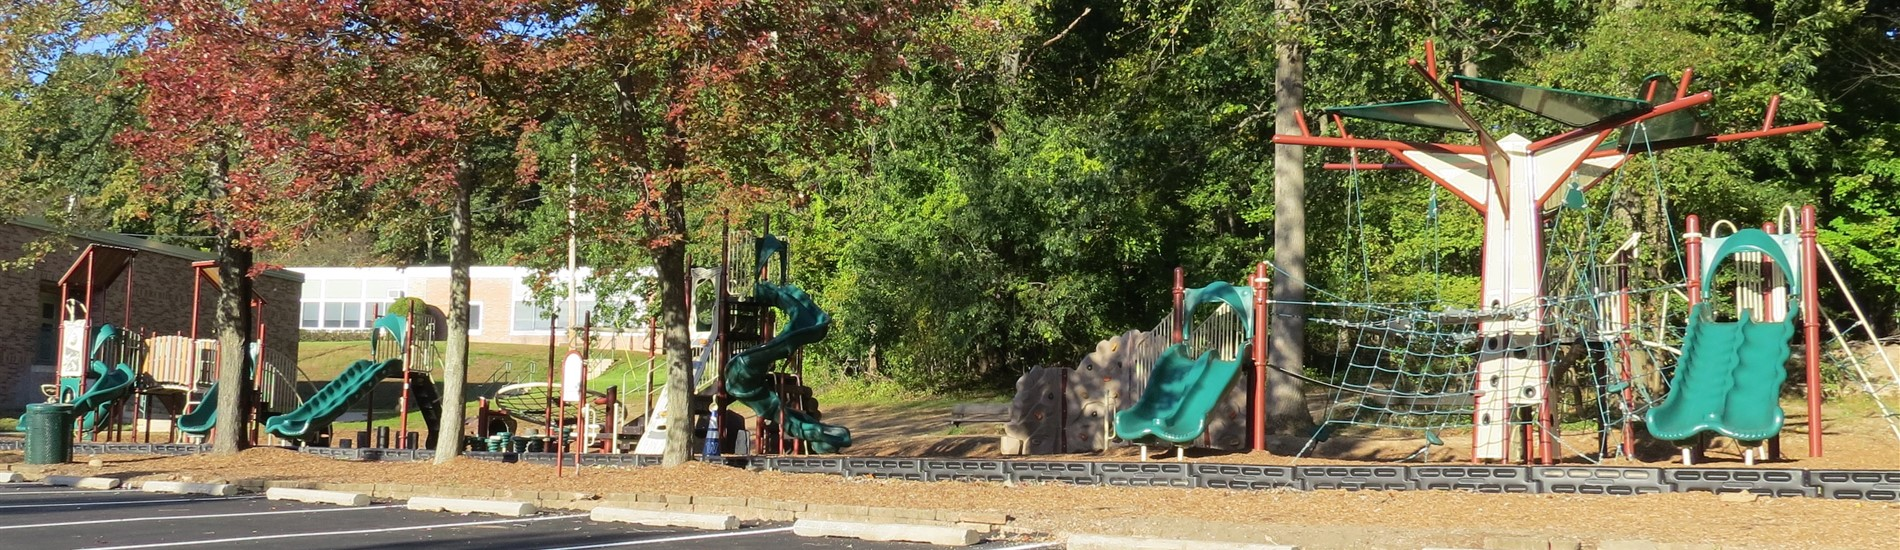 New Dorchester playground- lower level- view 1